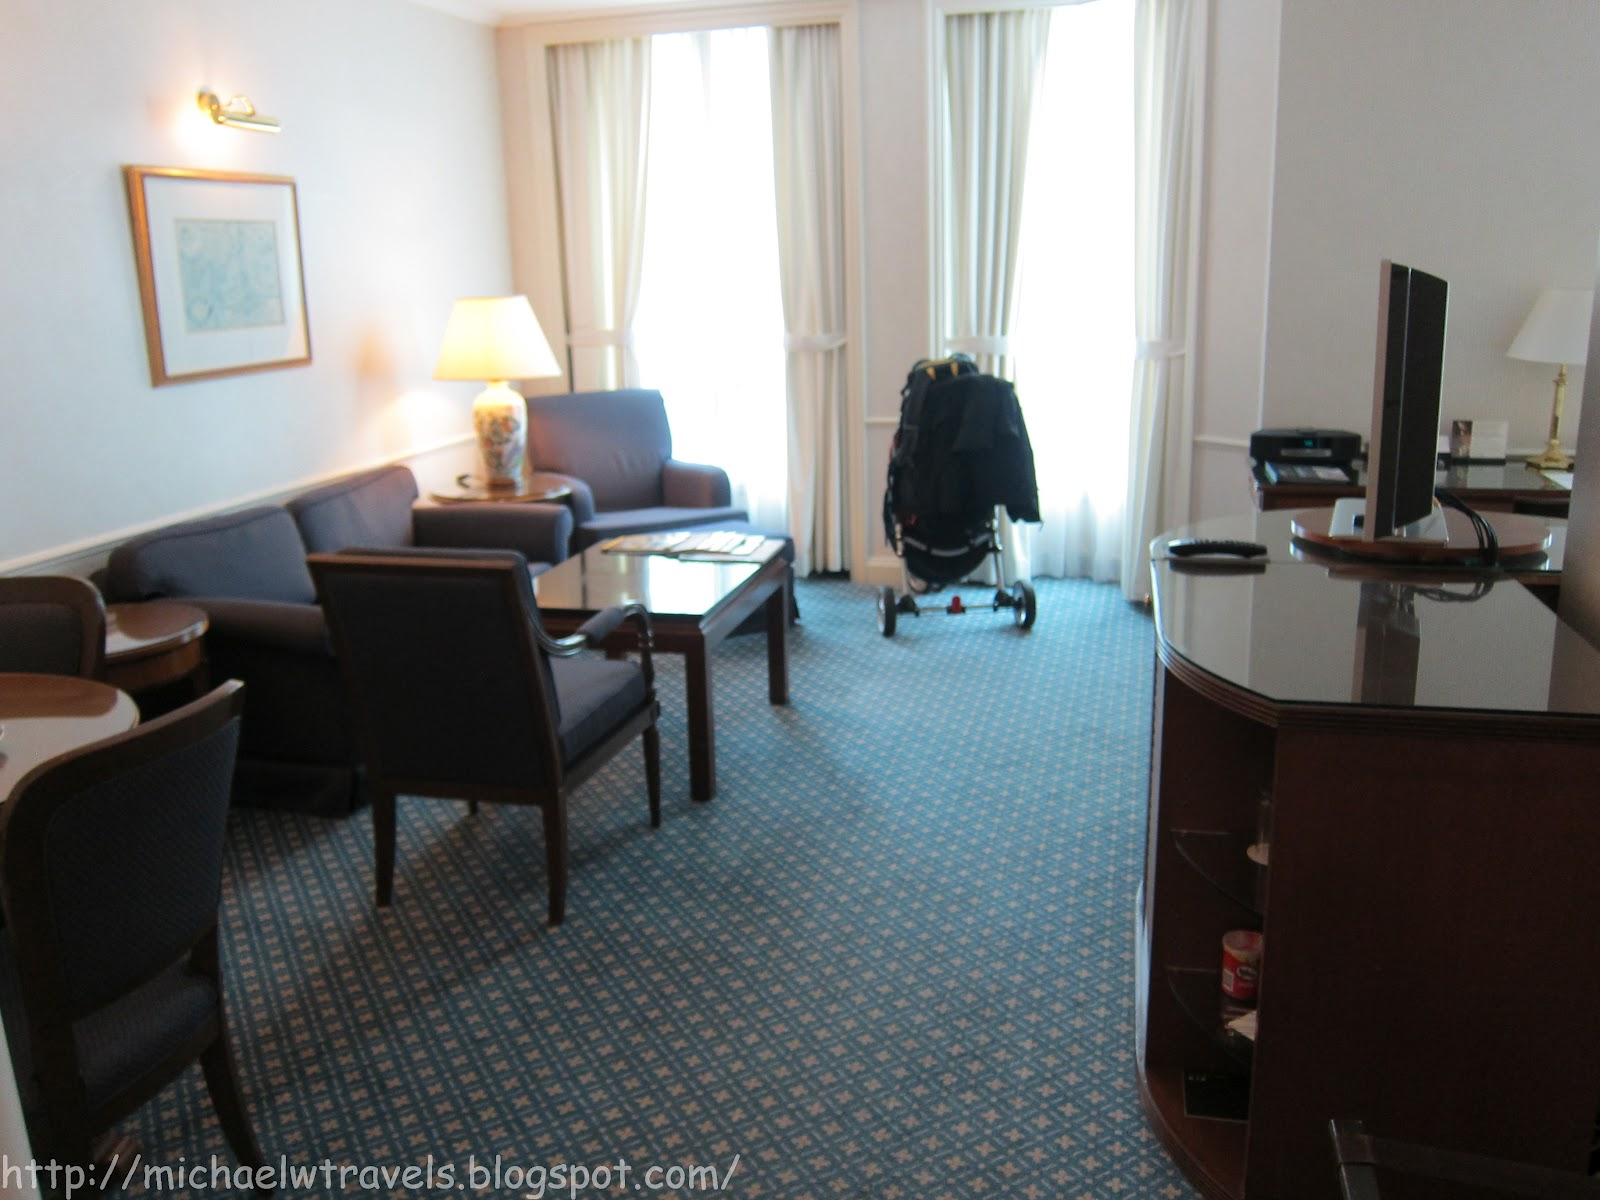 Hotel Review: Intercontinental Singapore - Michael W Travels...